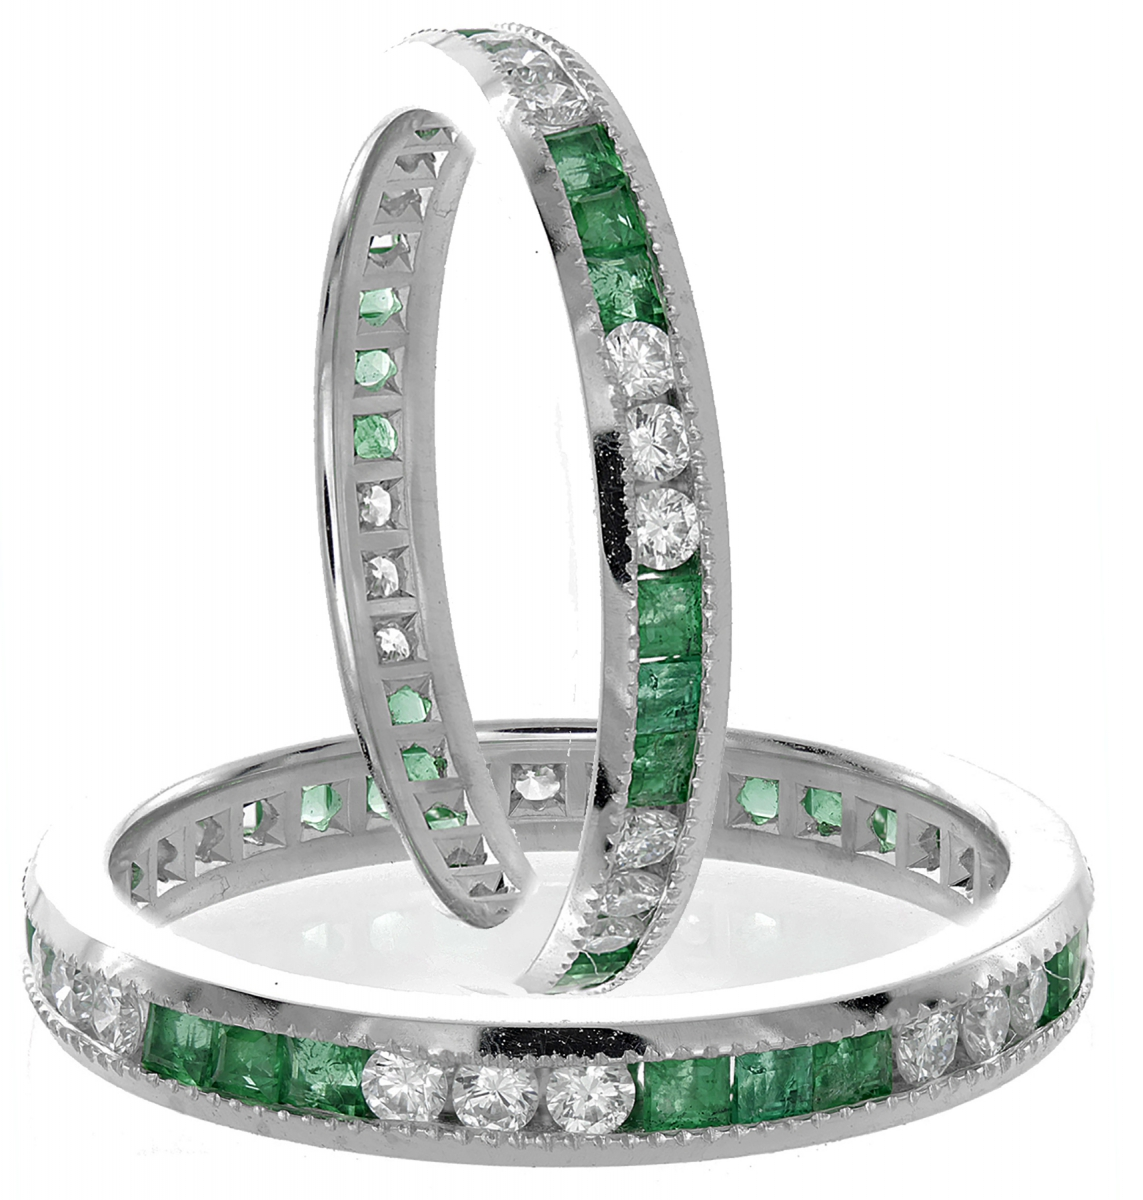 Emerald & Diamond Eternity Ring